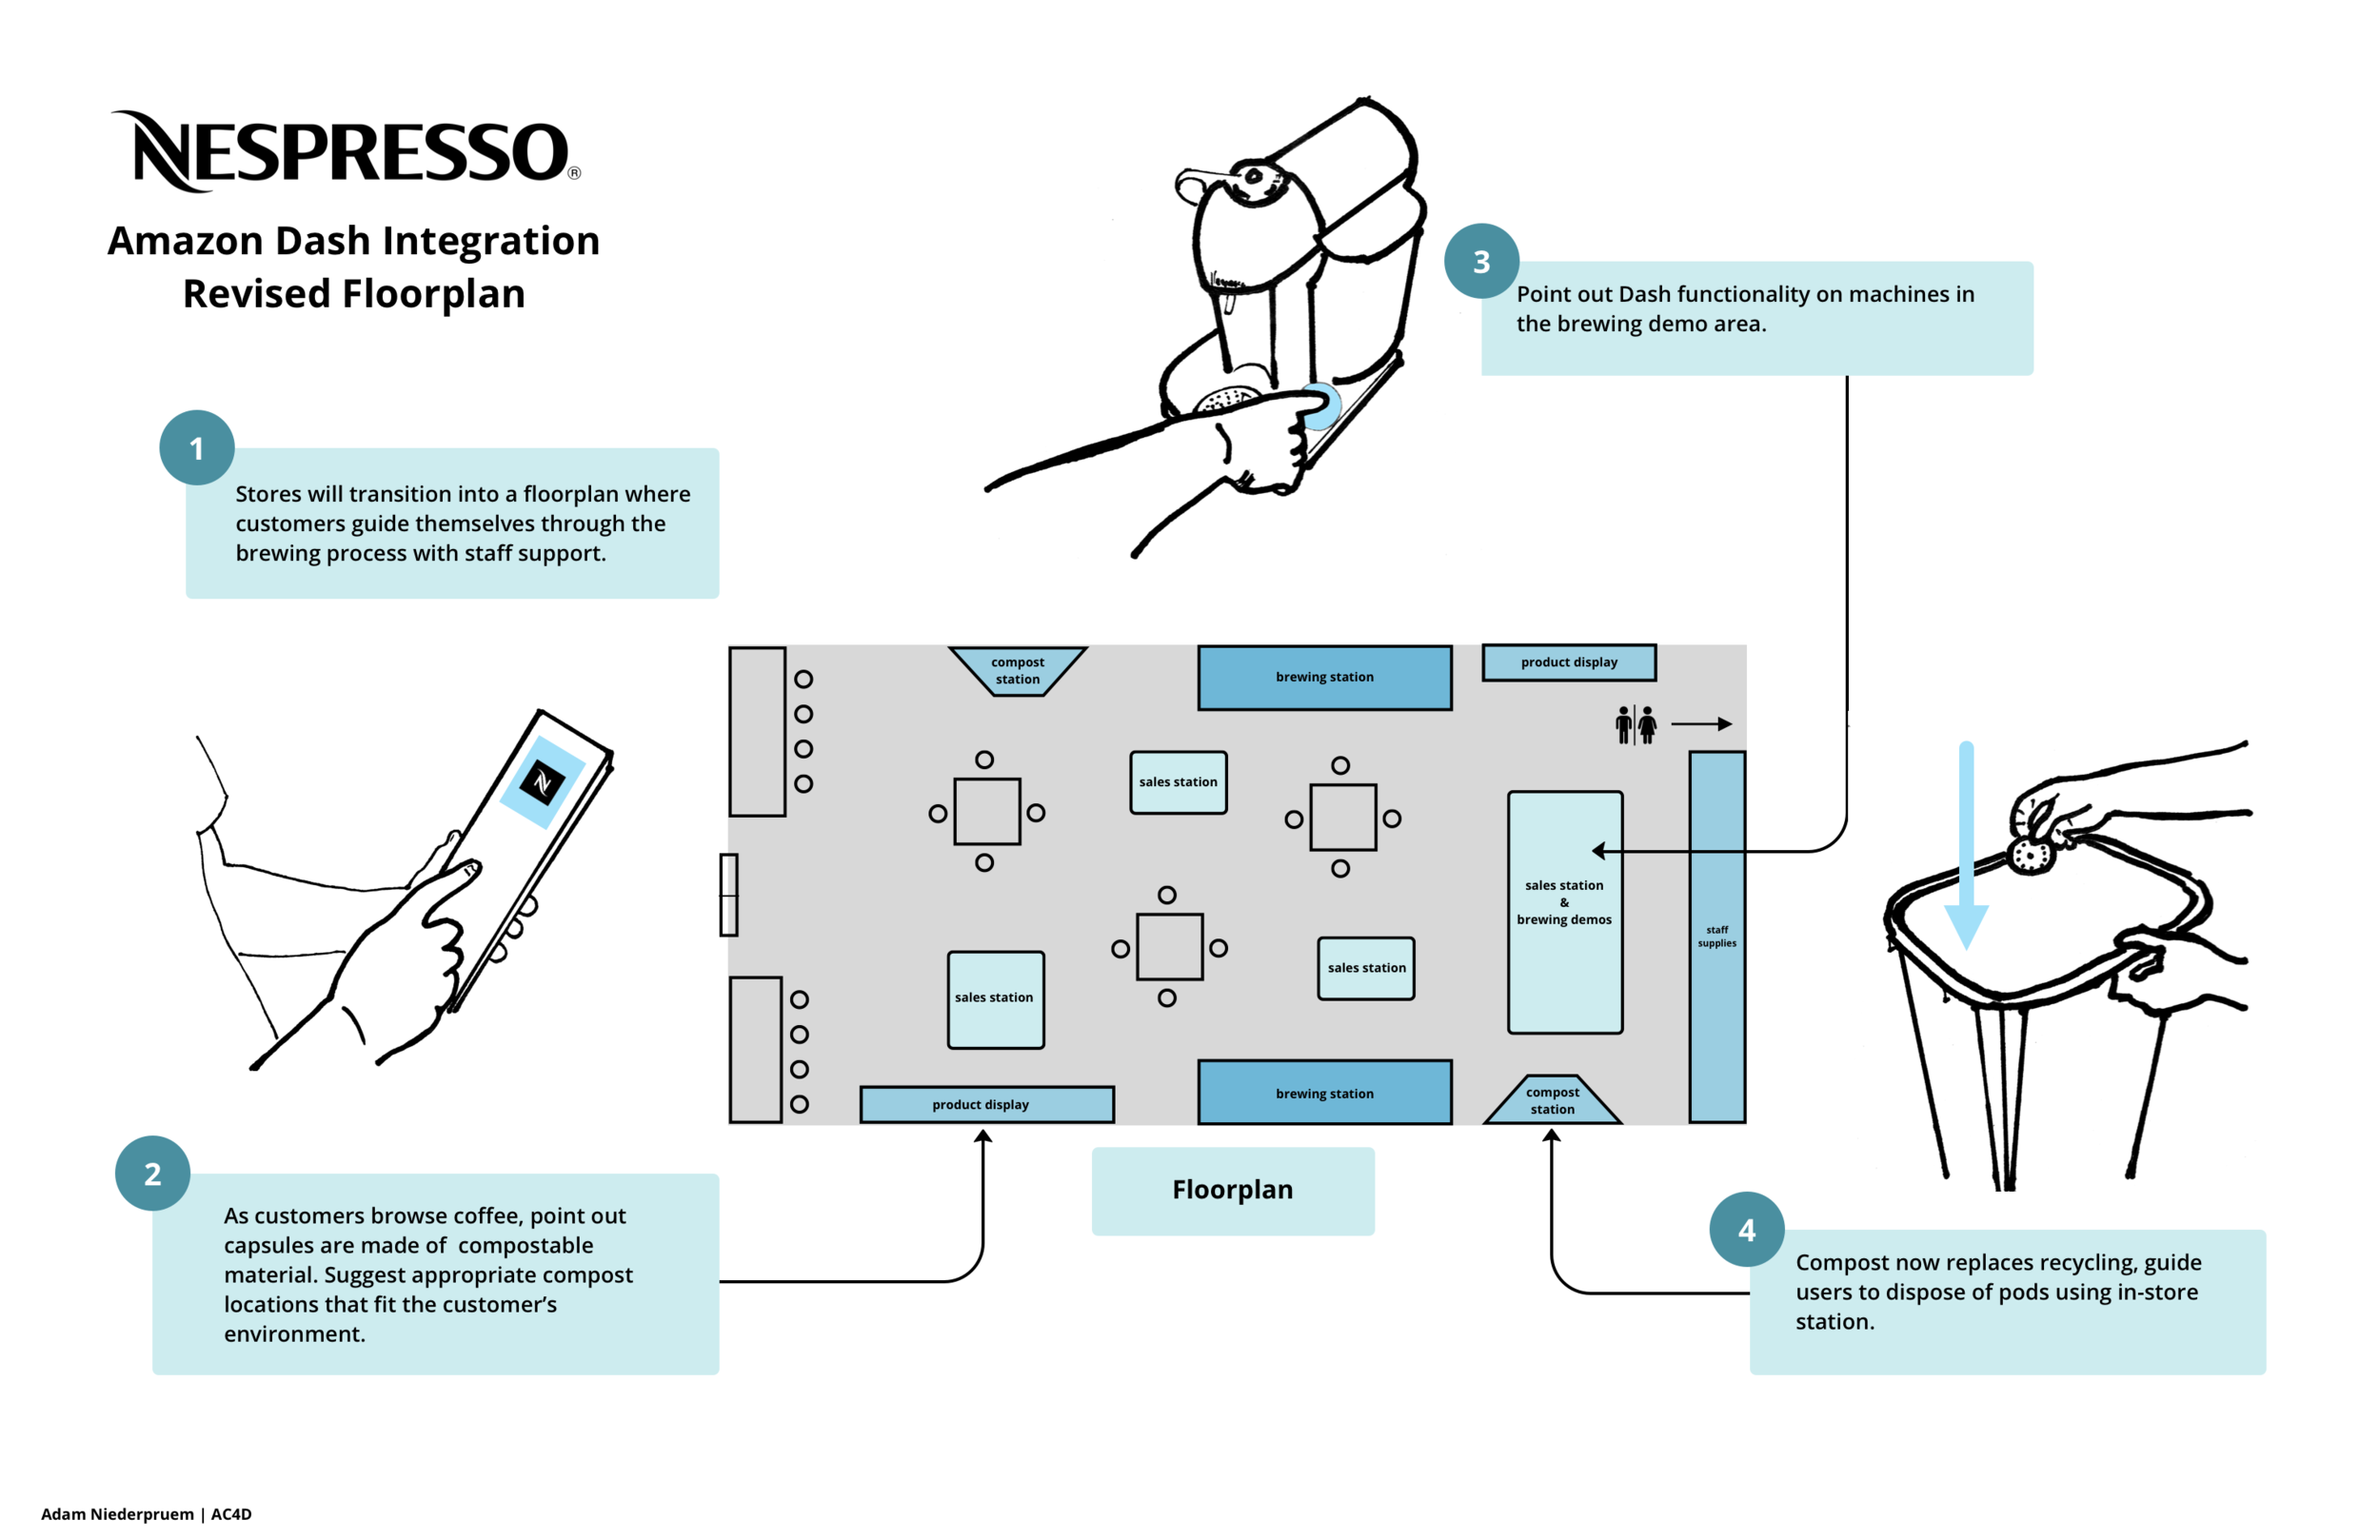 Nespresso Store Revised Floorplan with Amazon integration